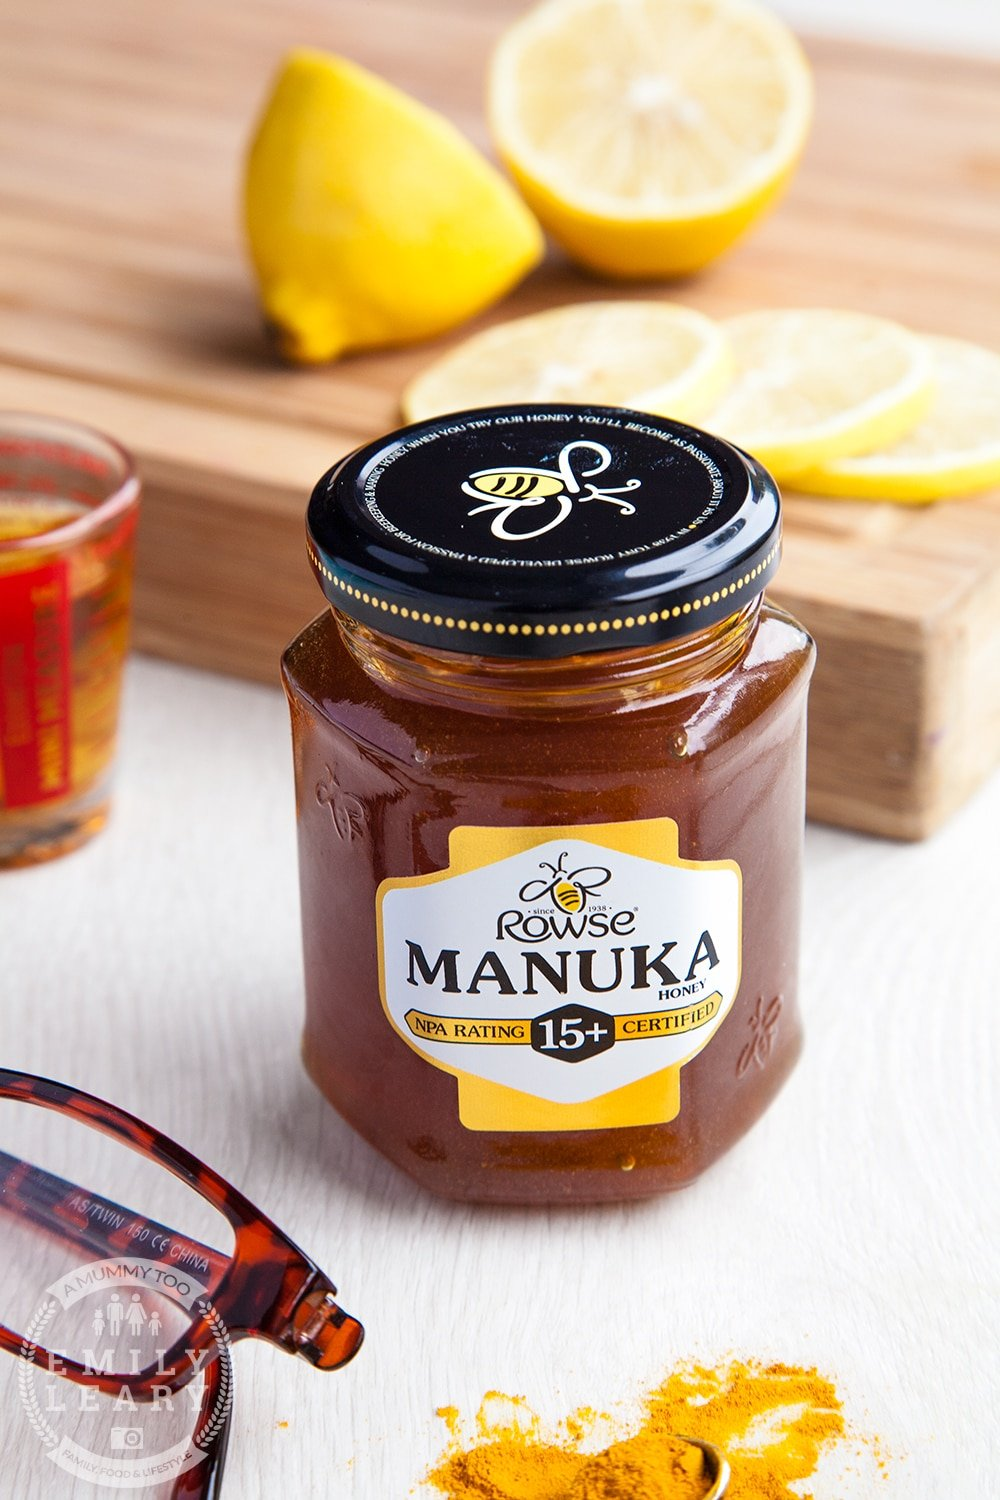 This Manuka honey and turmeric hot toddy features Rowse Manuka honey